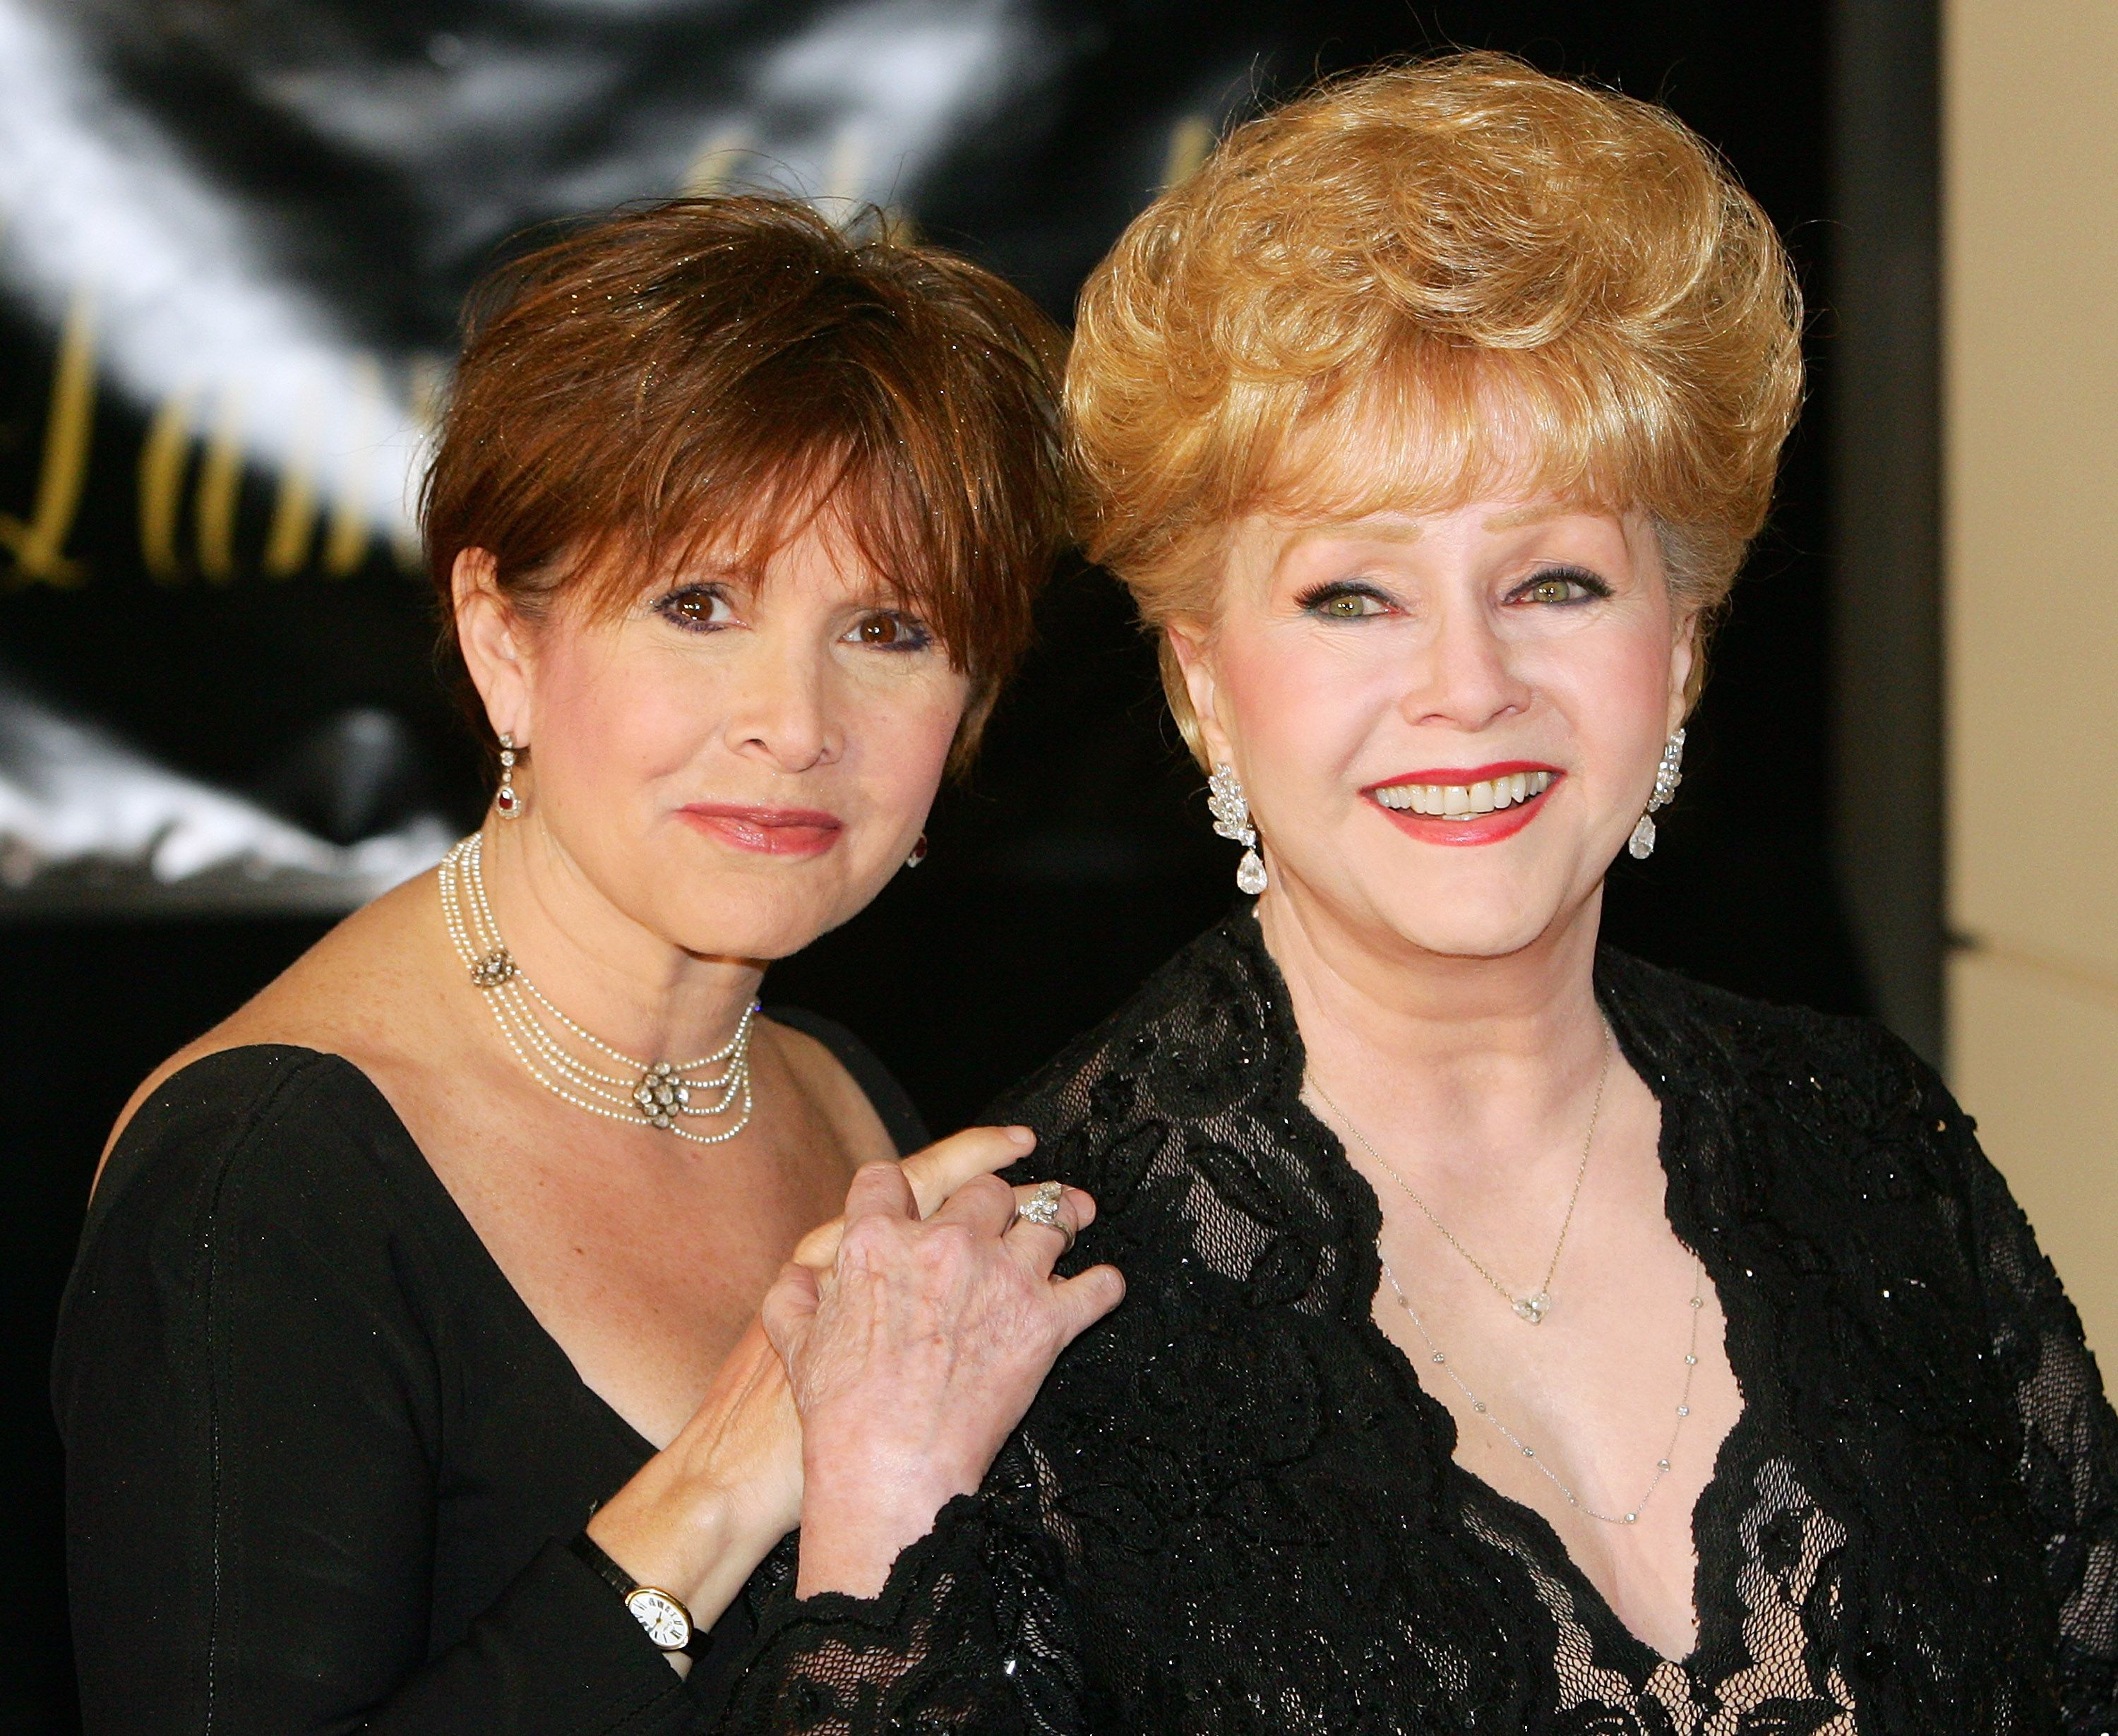 Actress Carrie Fisher and her mother, actress Debbie Reynolds, at Dame Elizabeth Taylor's 75th birthday party at the Ritz-Carlton, Lake Las Vegas on February 27, 2007 | Photo: Getty Images